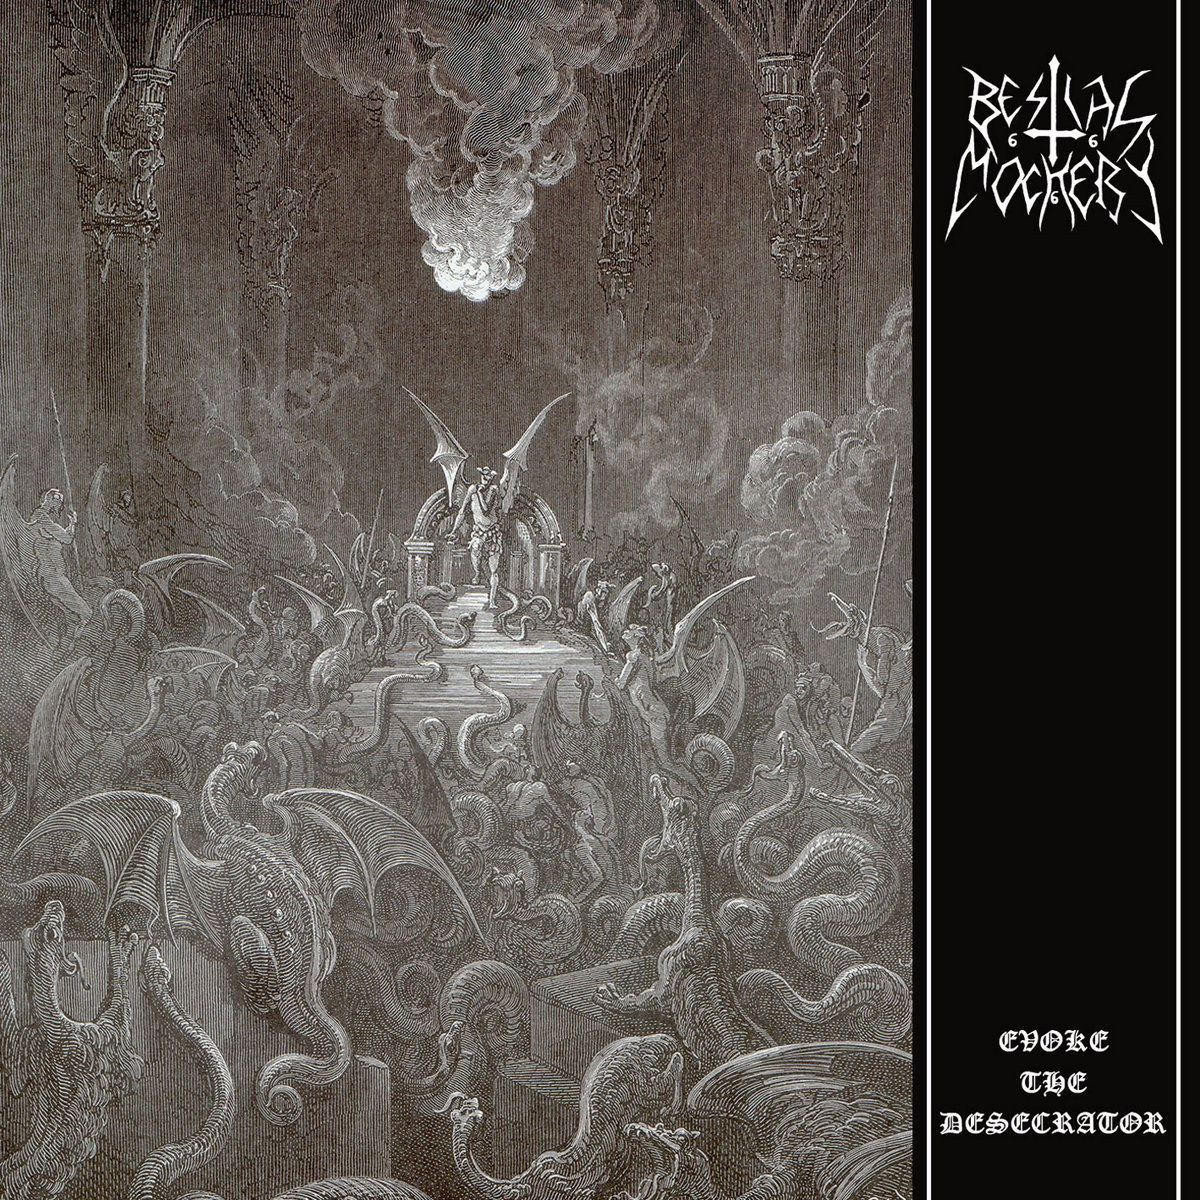 Review for Bestial Mockery - Evoke the Desecrator